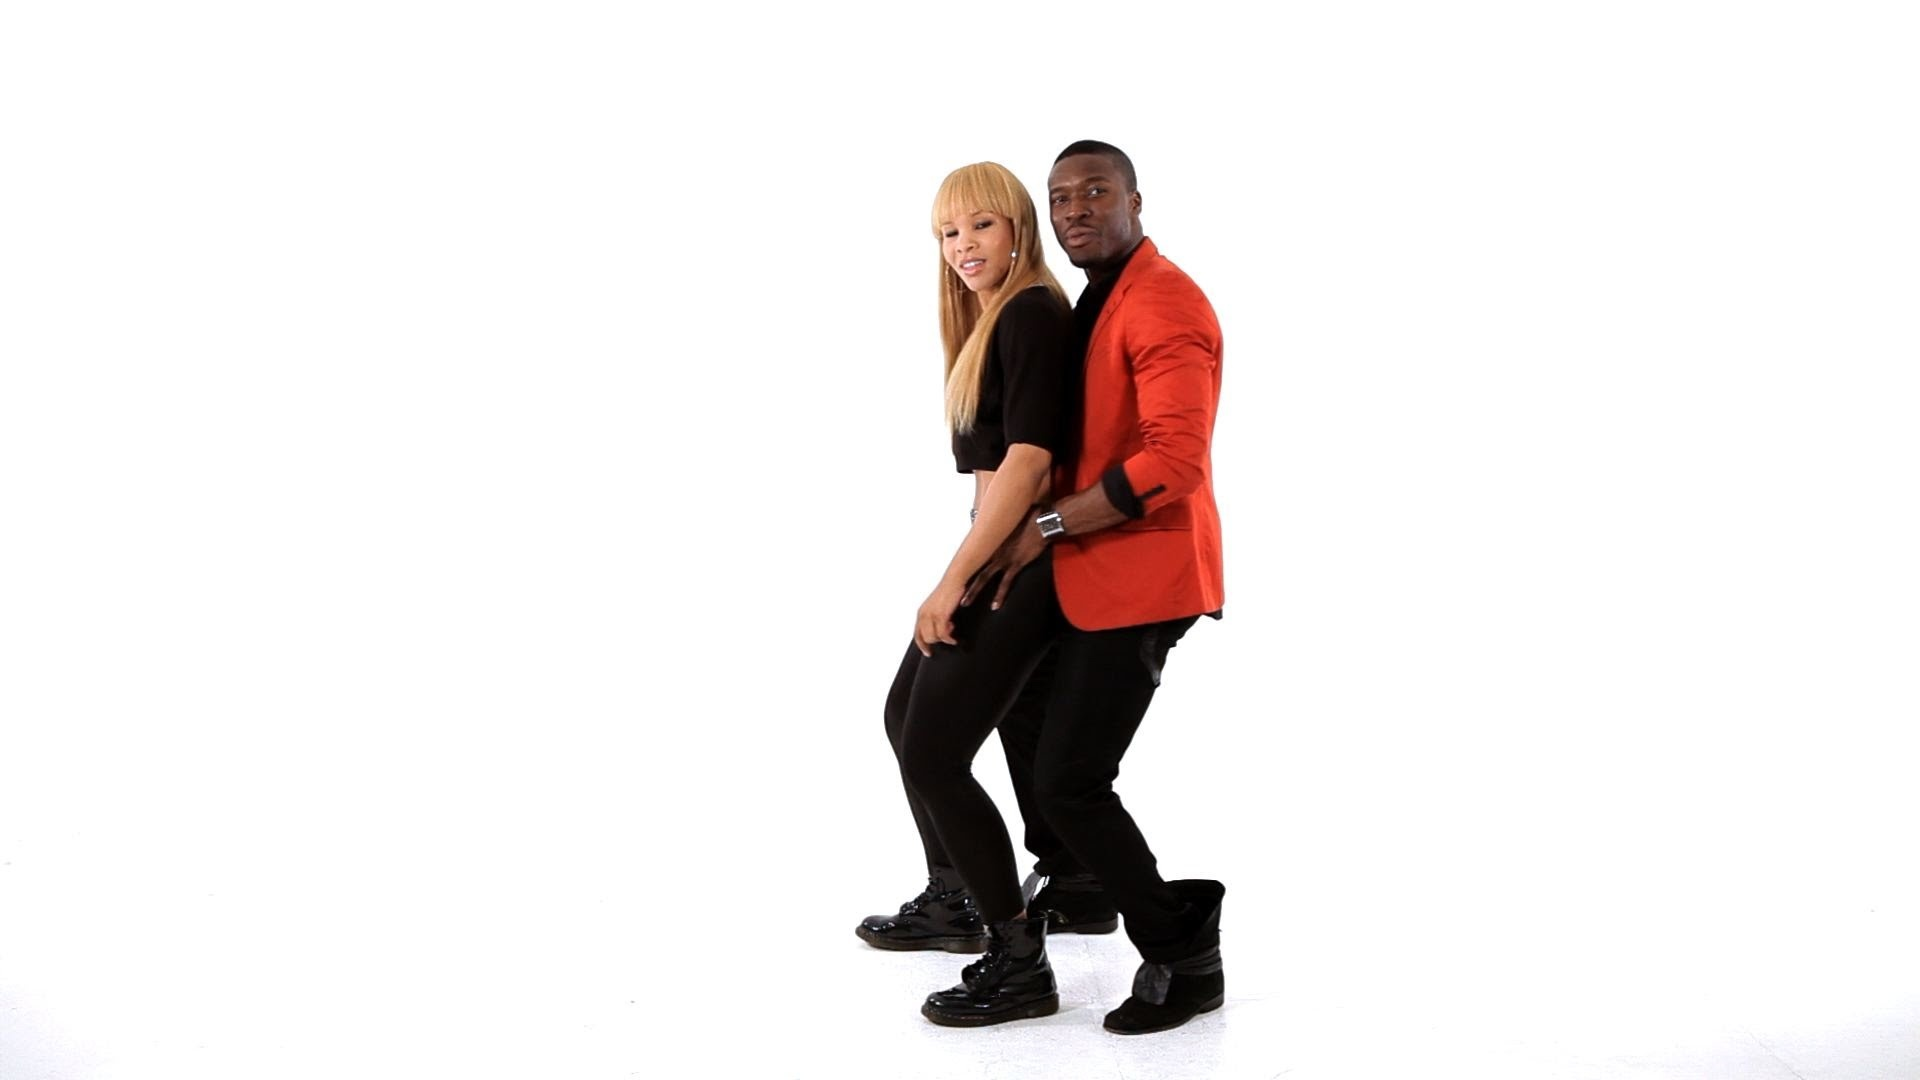 Is dancing with another girl cheating